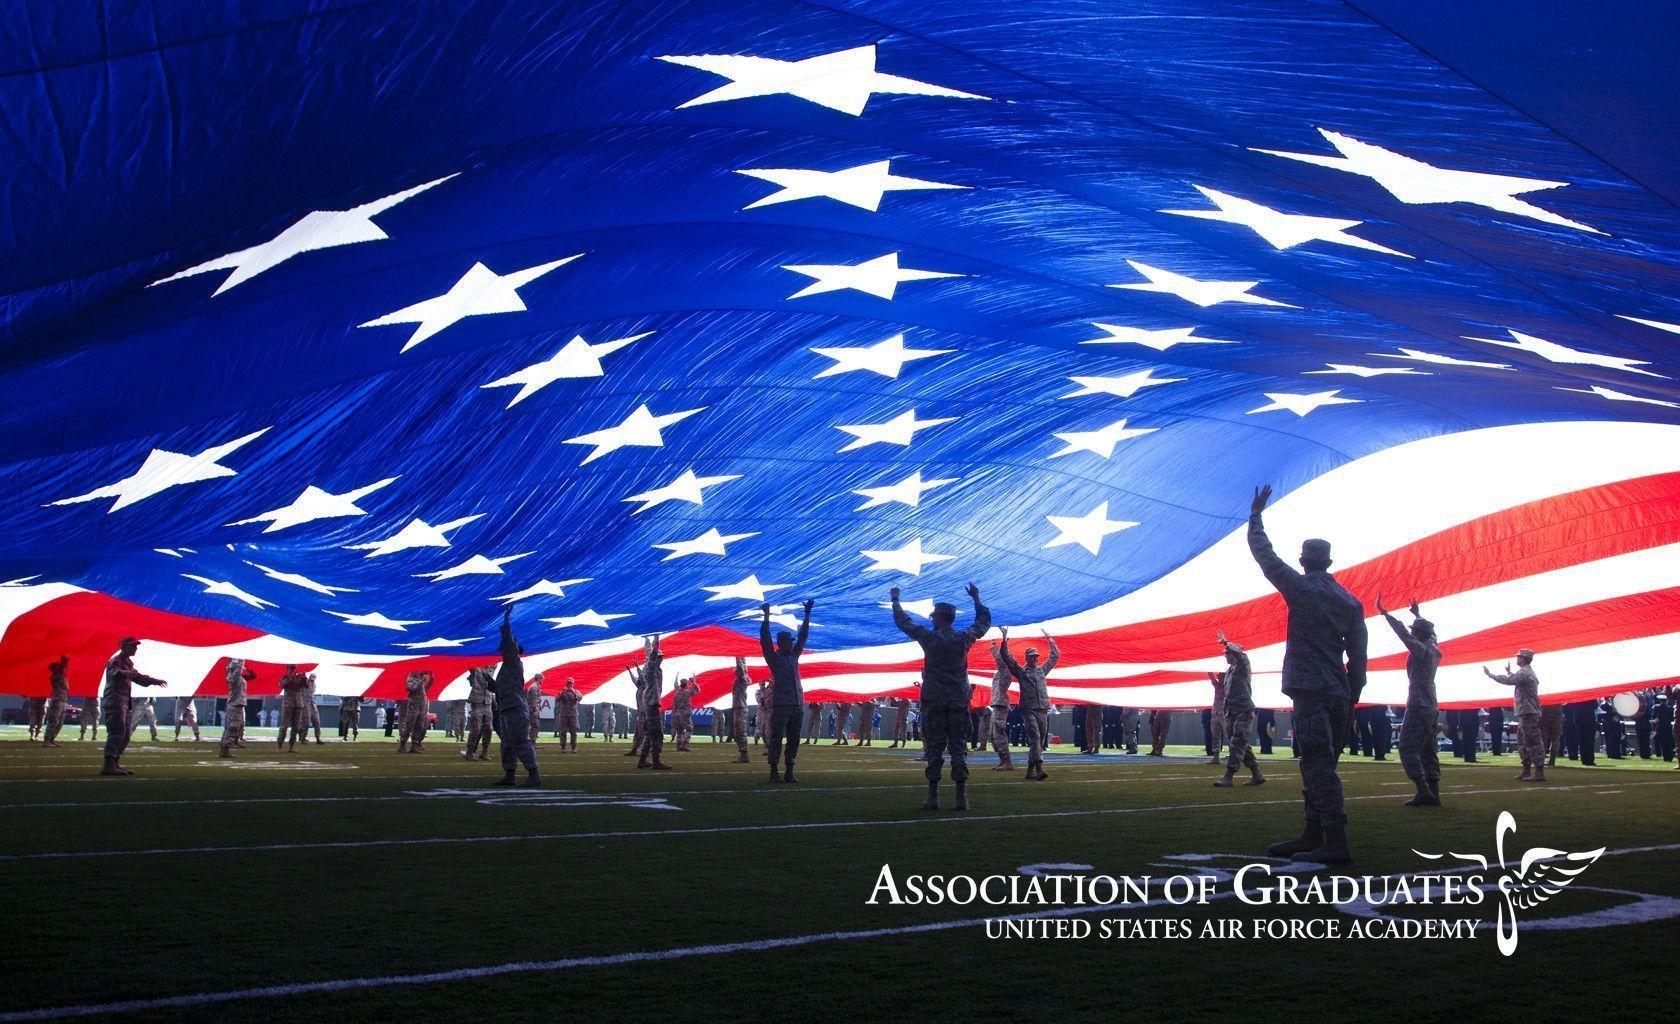 USAFA Desktop Wallpapers Image